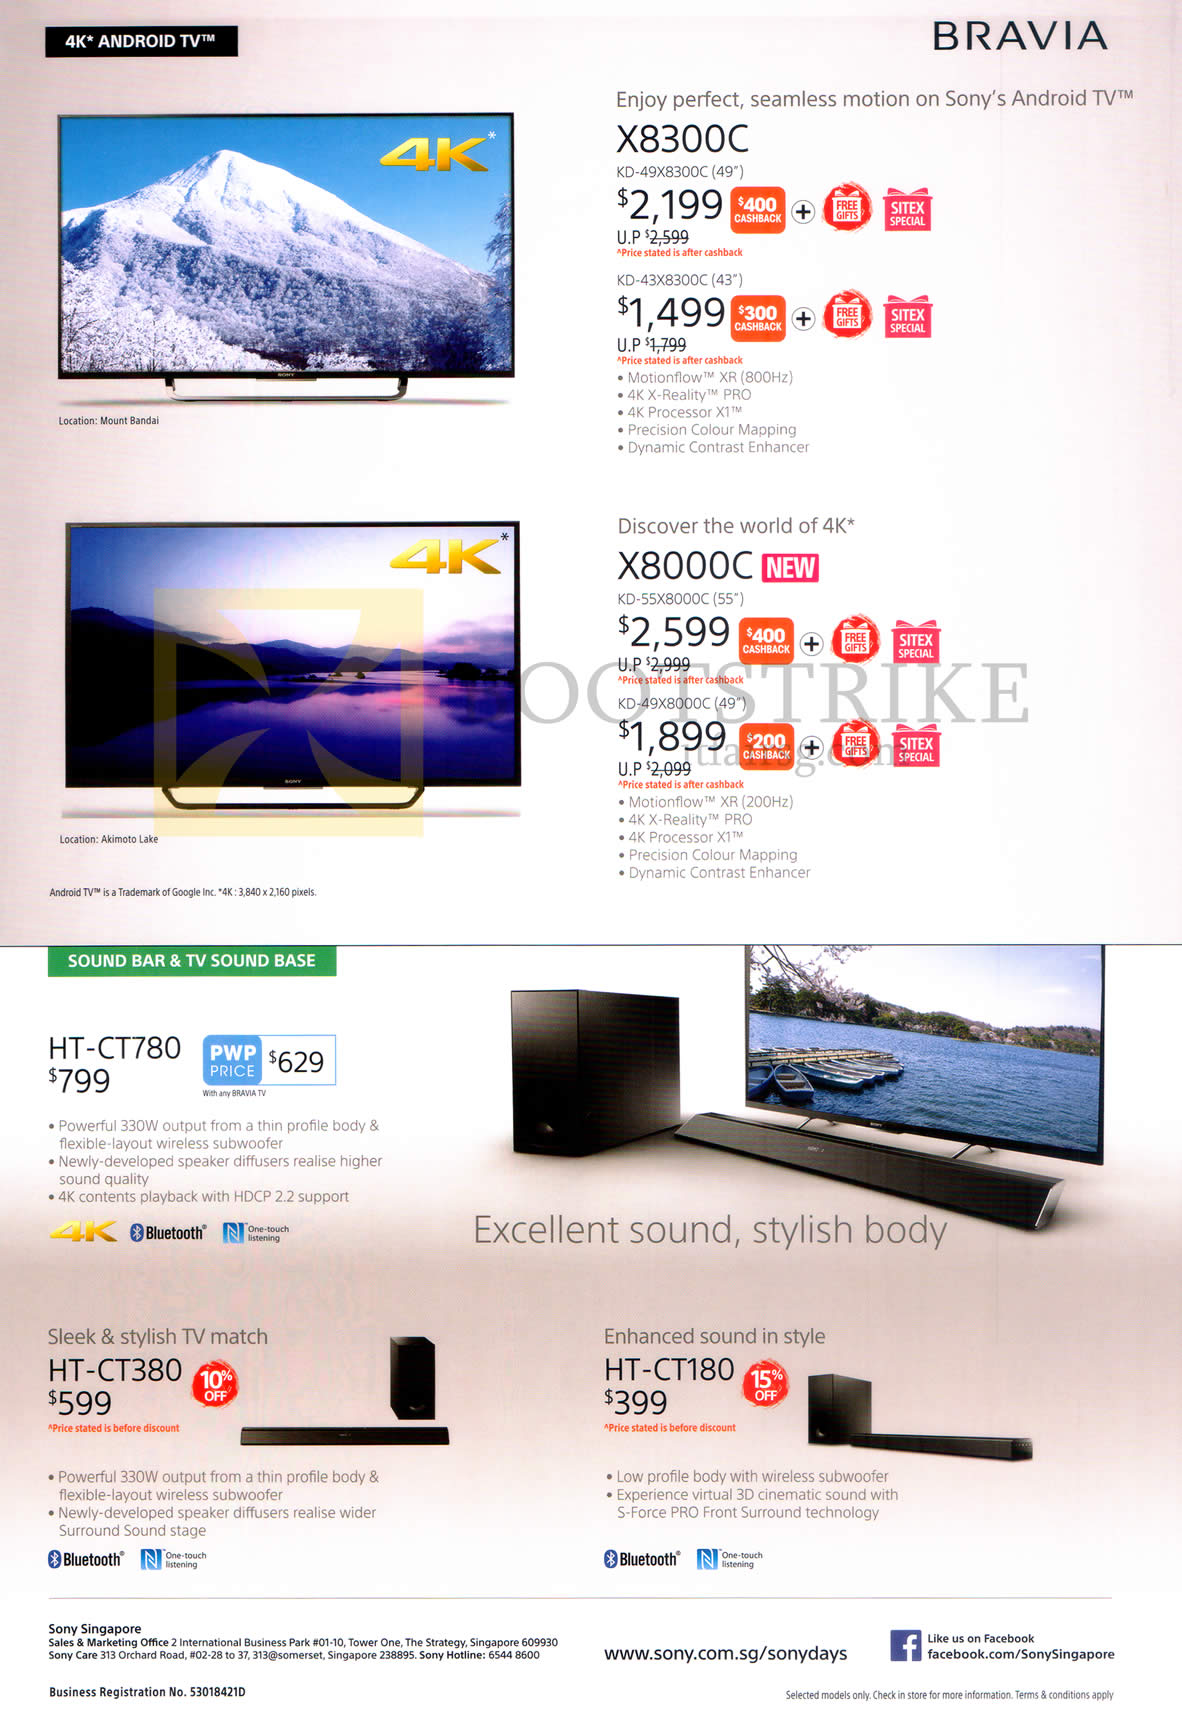 SITEX 2015 price list image brochure of Sony TVs KD-X8300C, X8000C, HT-CT780, HT-CT380, HT-CT-180